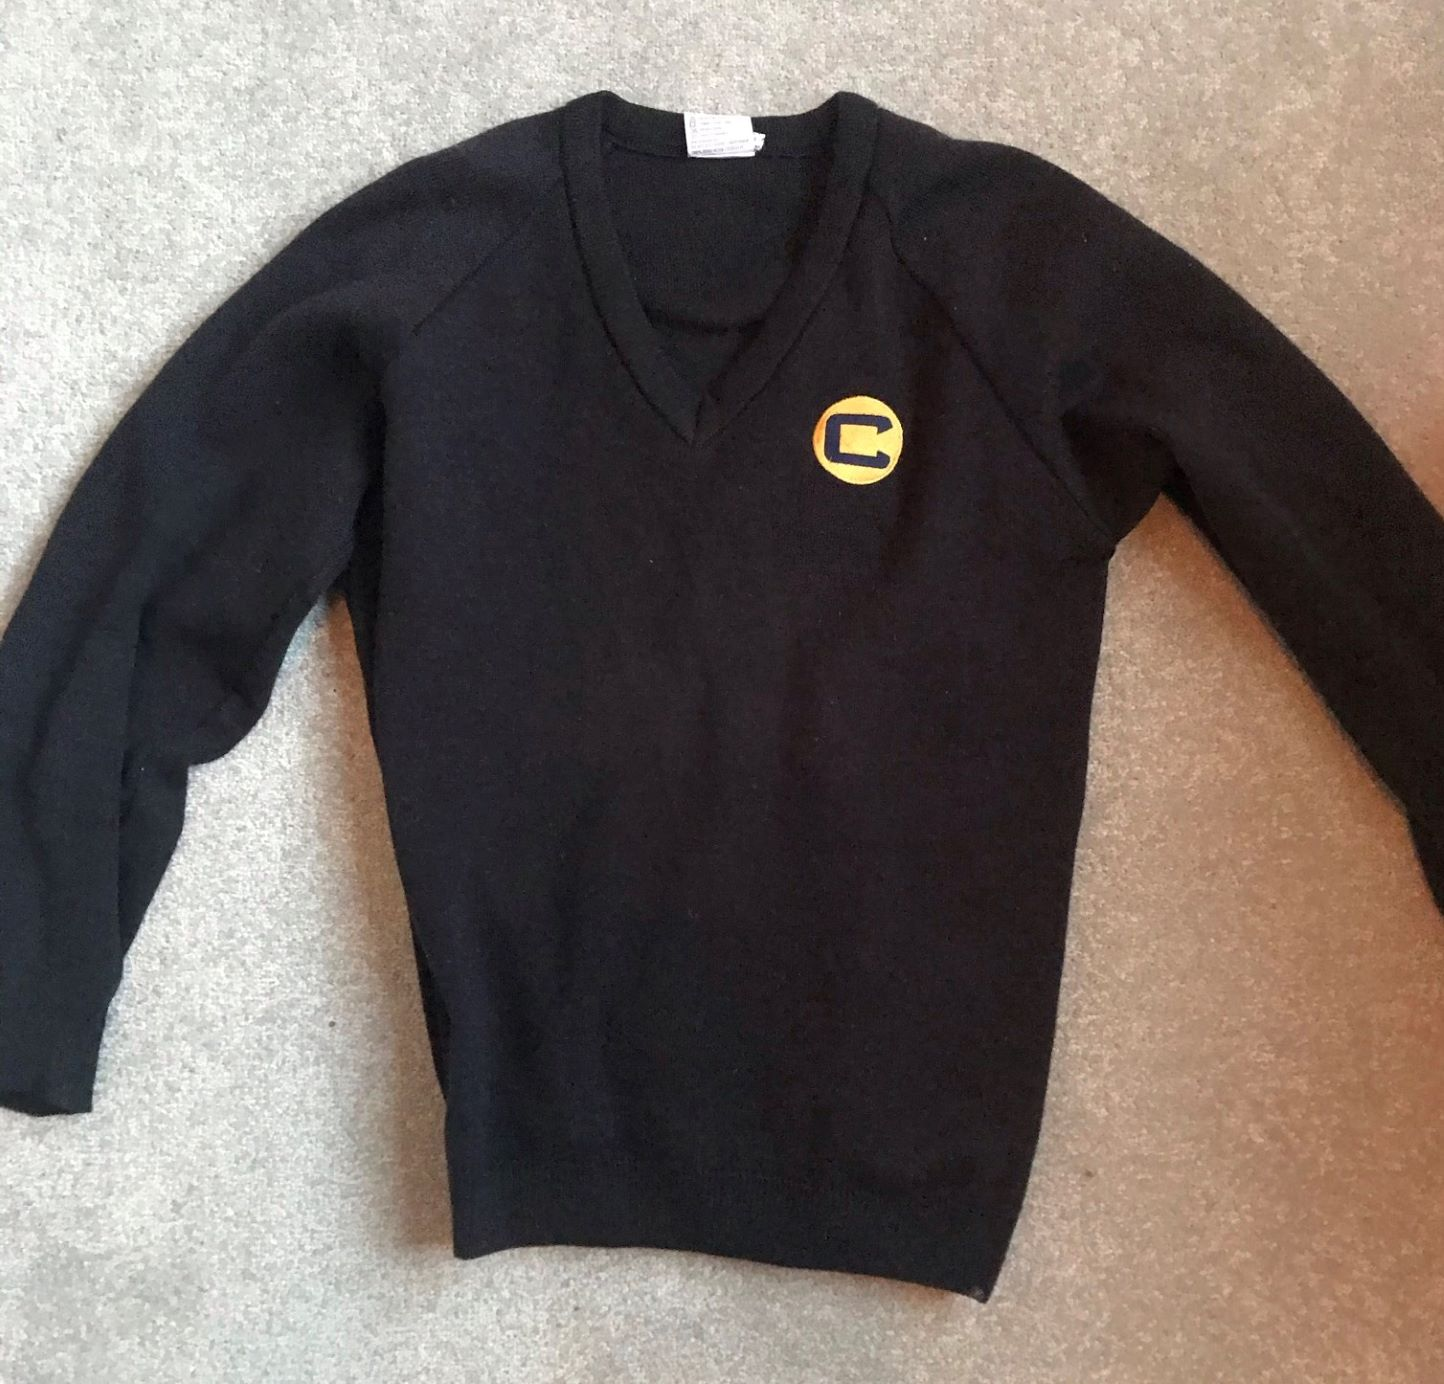 Charter North Jumper: Size 38